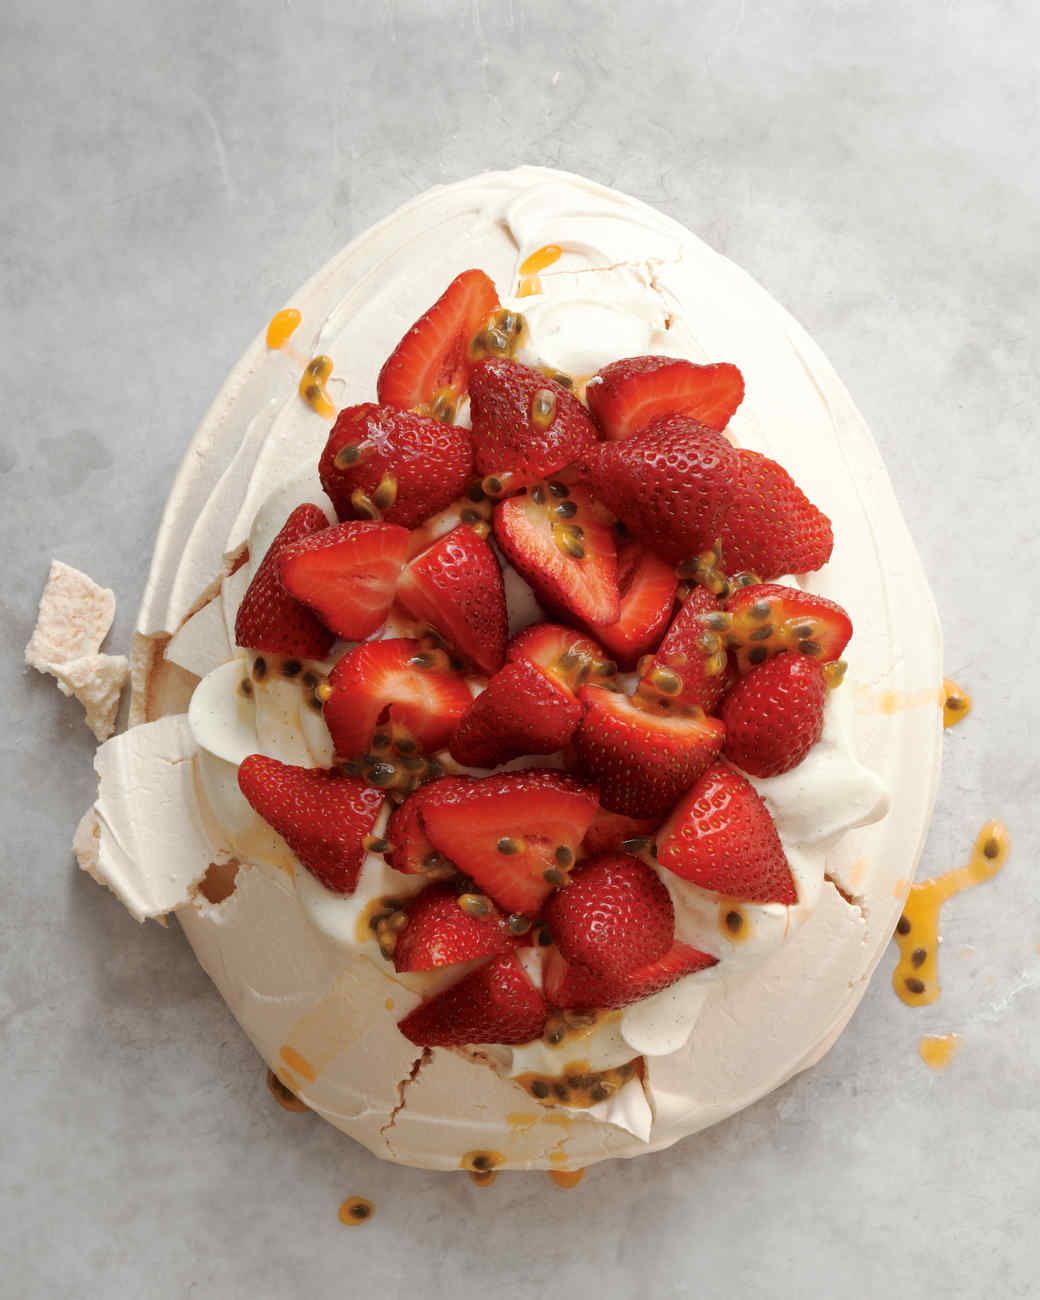 strawberry-passion-fruit-pavlova-mld108100.jpg